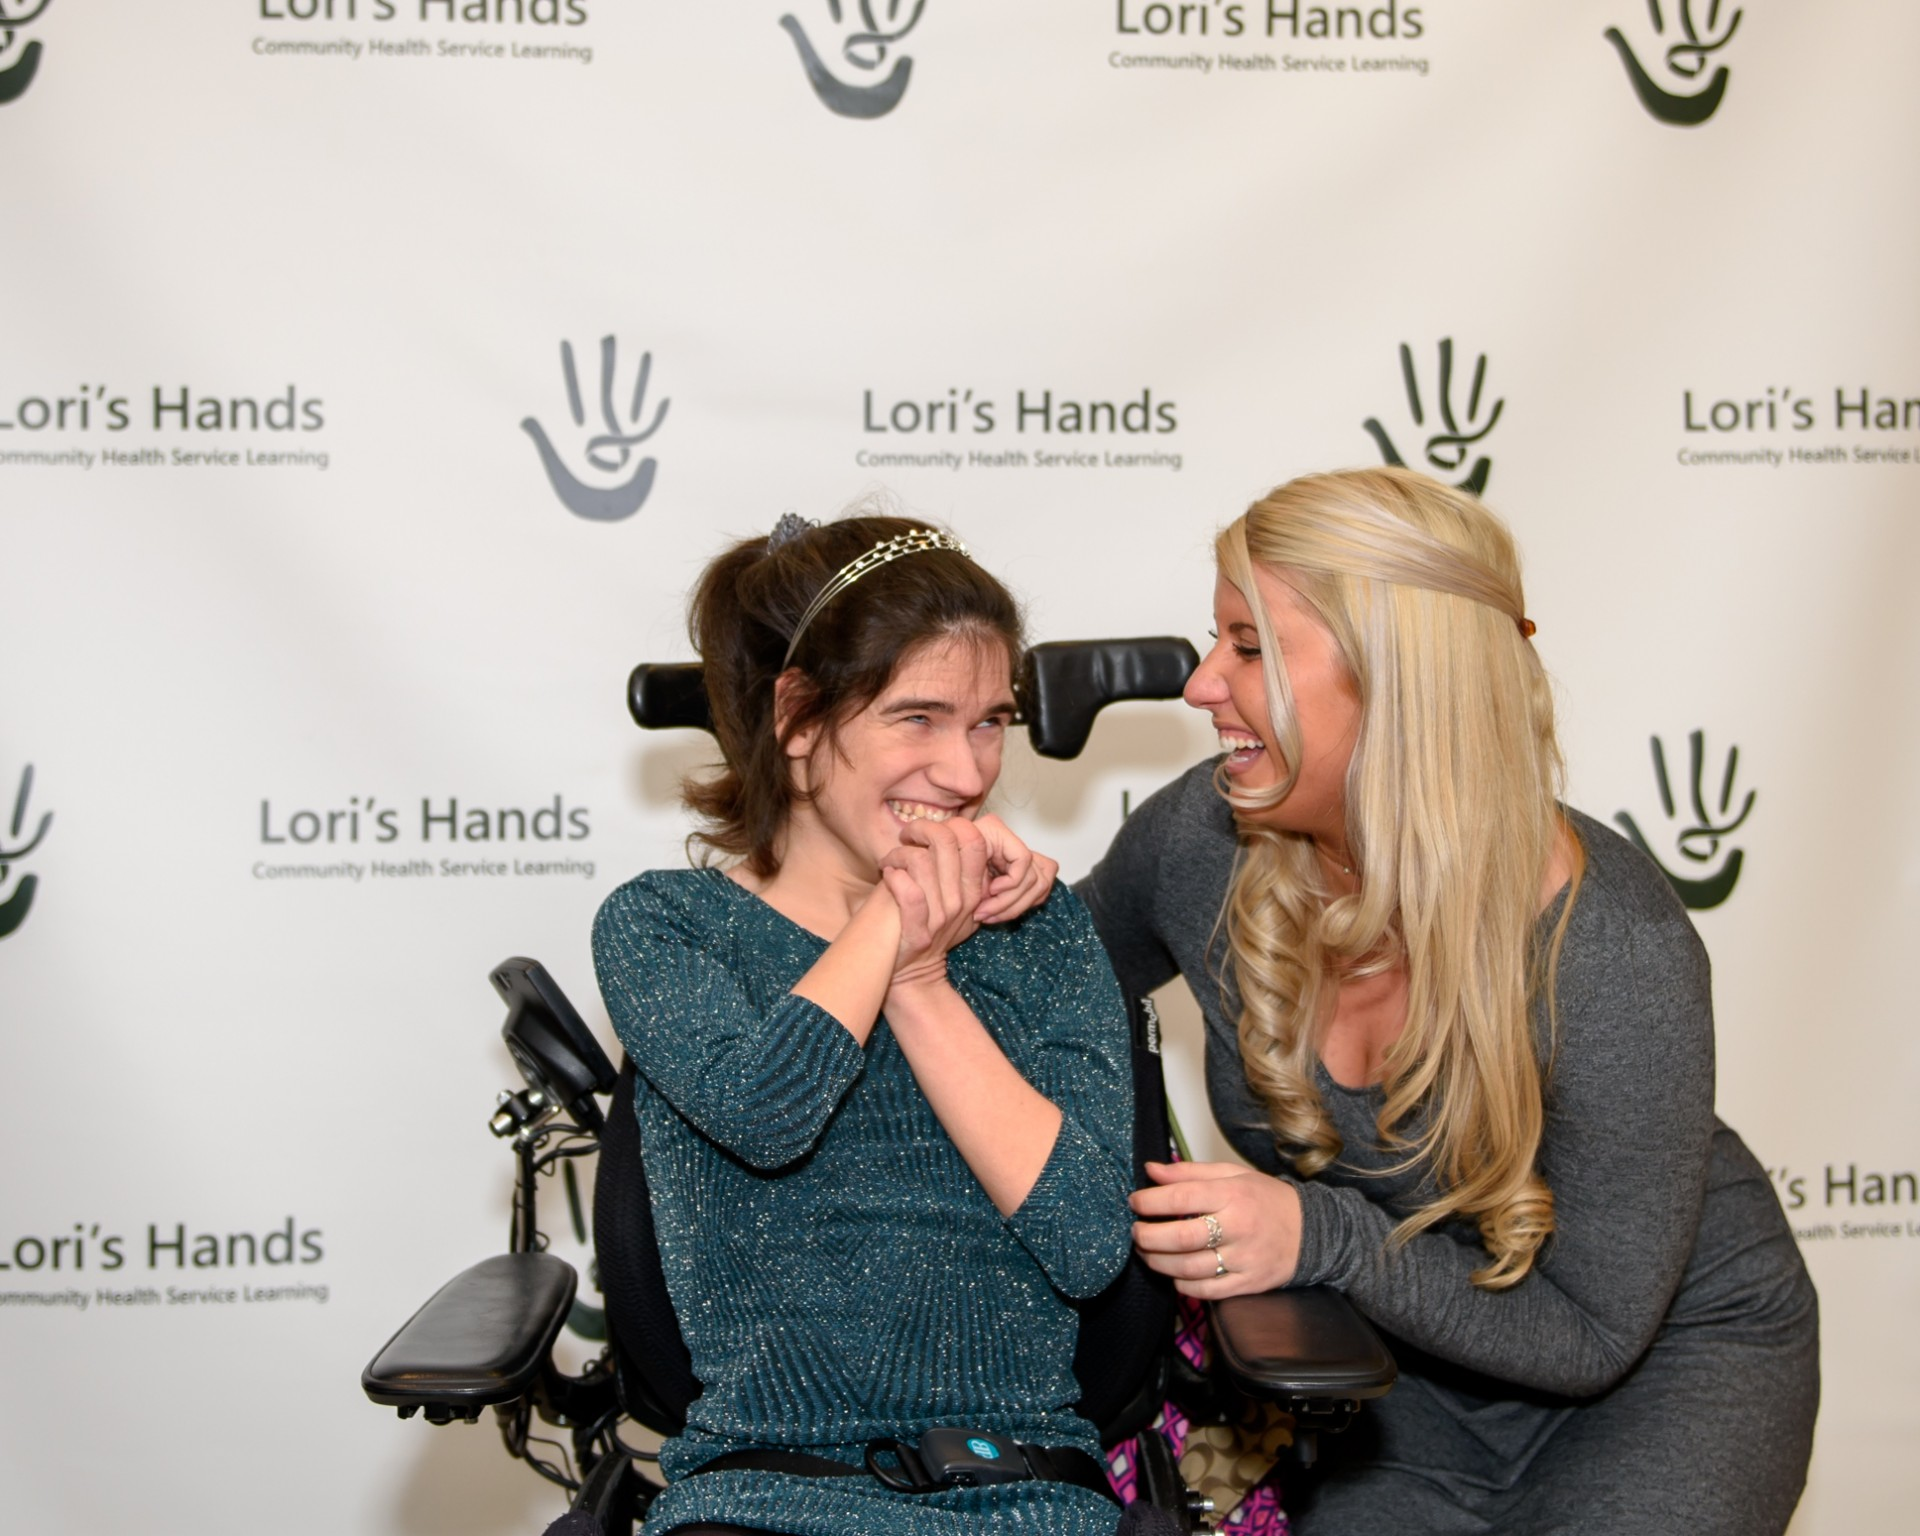 Kyla and one of her clients, Brigitte, at the Green Ribbon Gala.